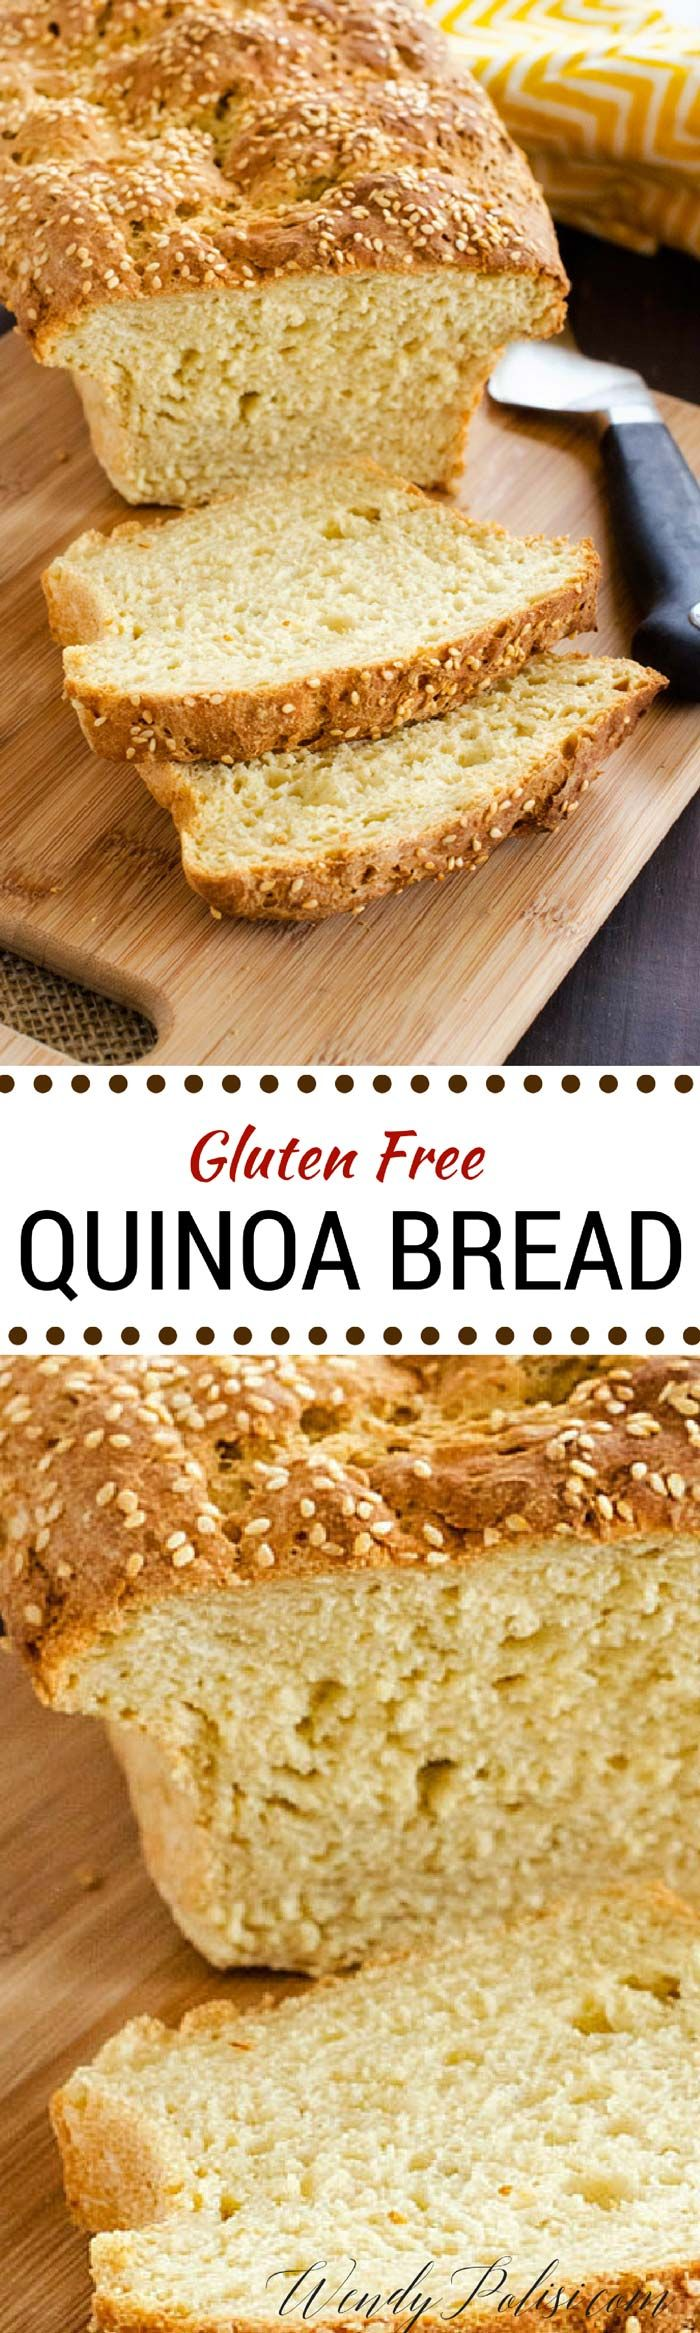 Gluten Free Quinoa Bread via @wendypolisi - vegan if use vegan options listed in recipe